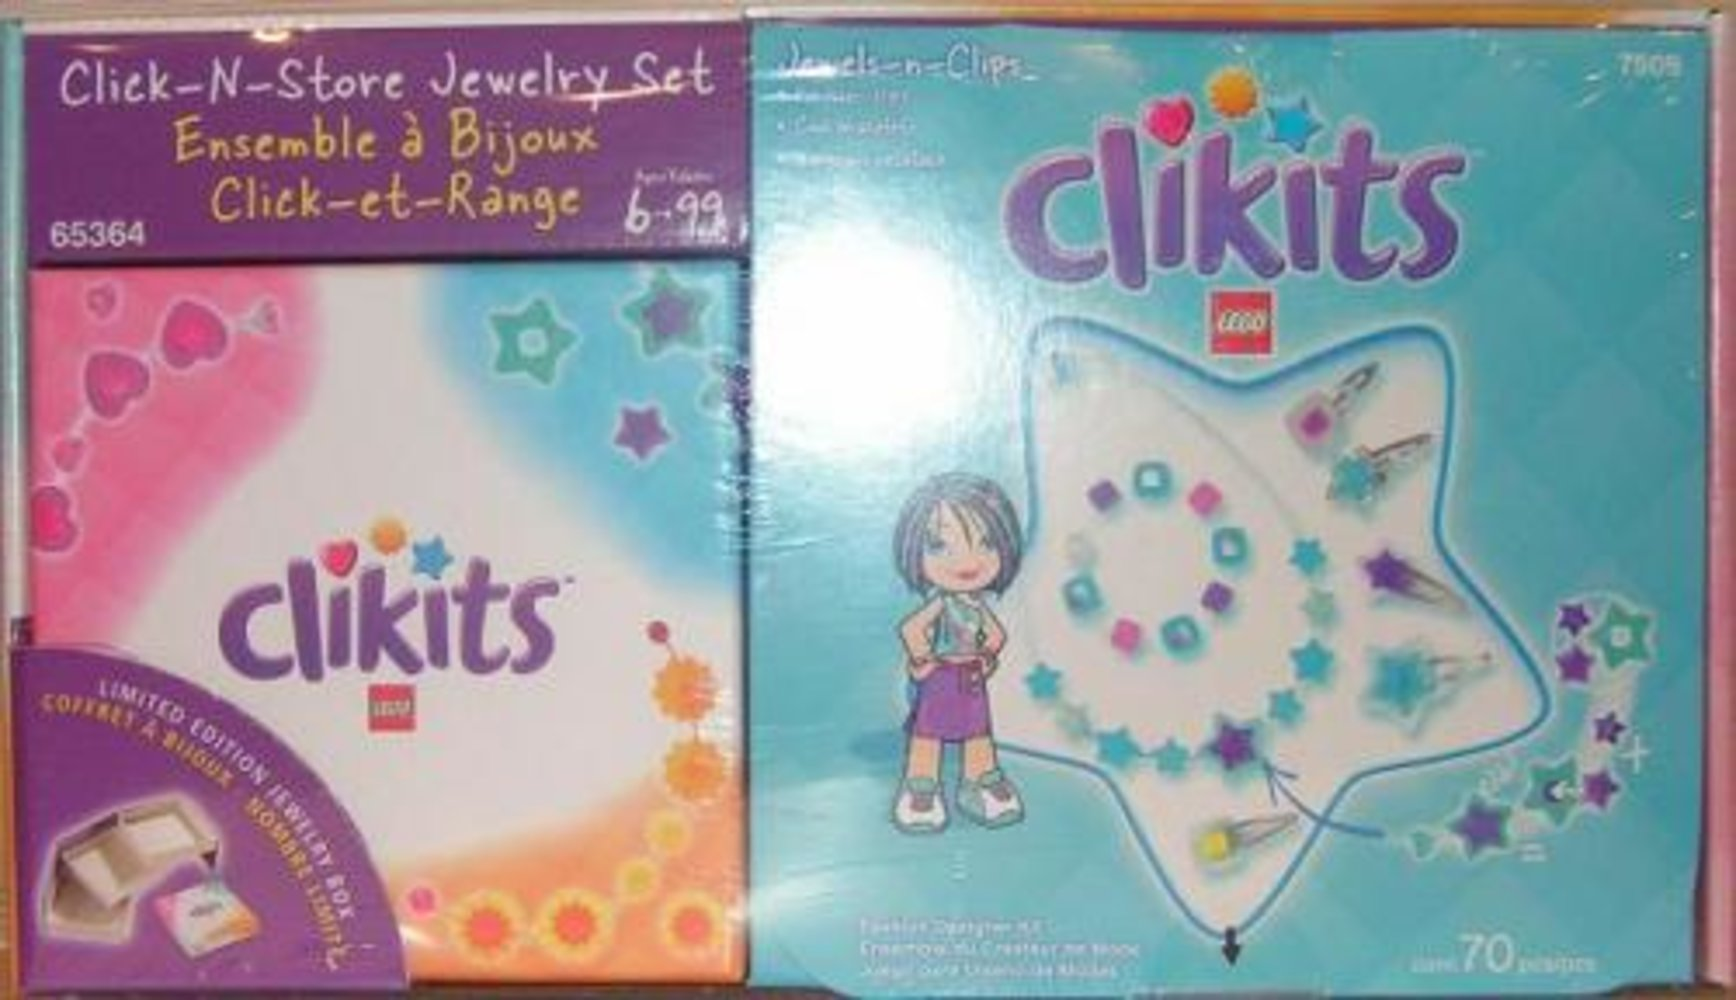 Jewels-n-Clips Click-N-Store Jewelry Set Co-Pack (7509 with jewelry box)